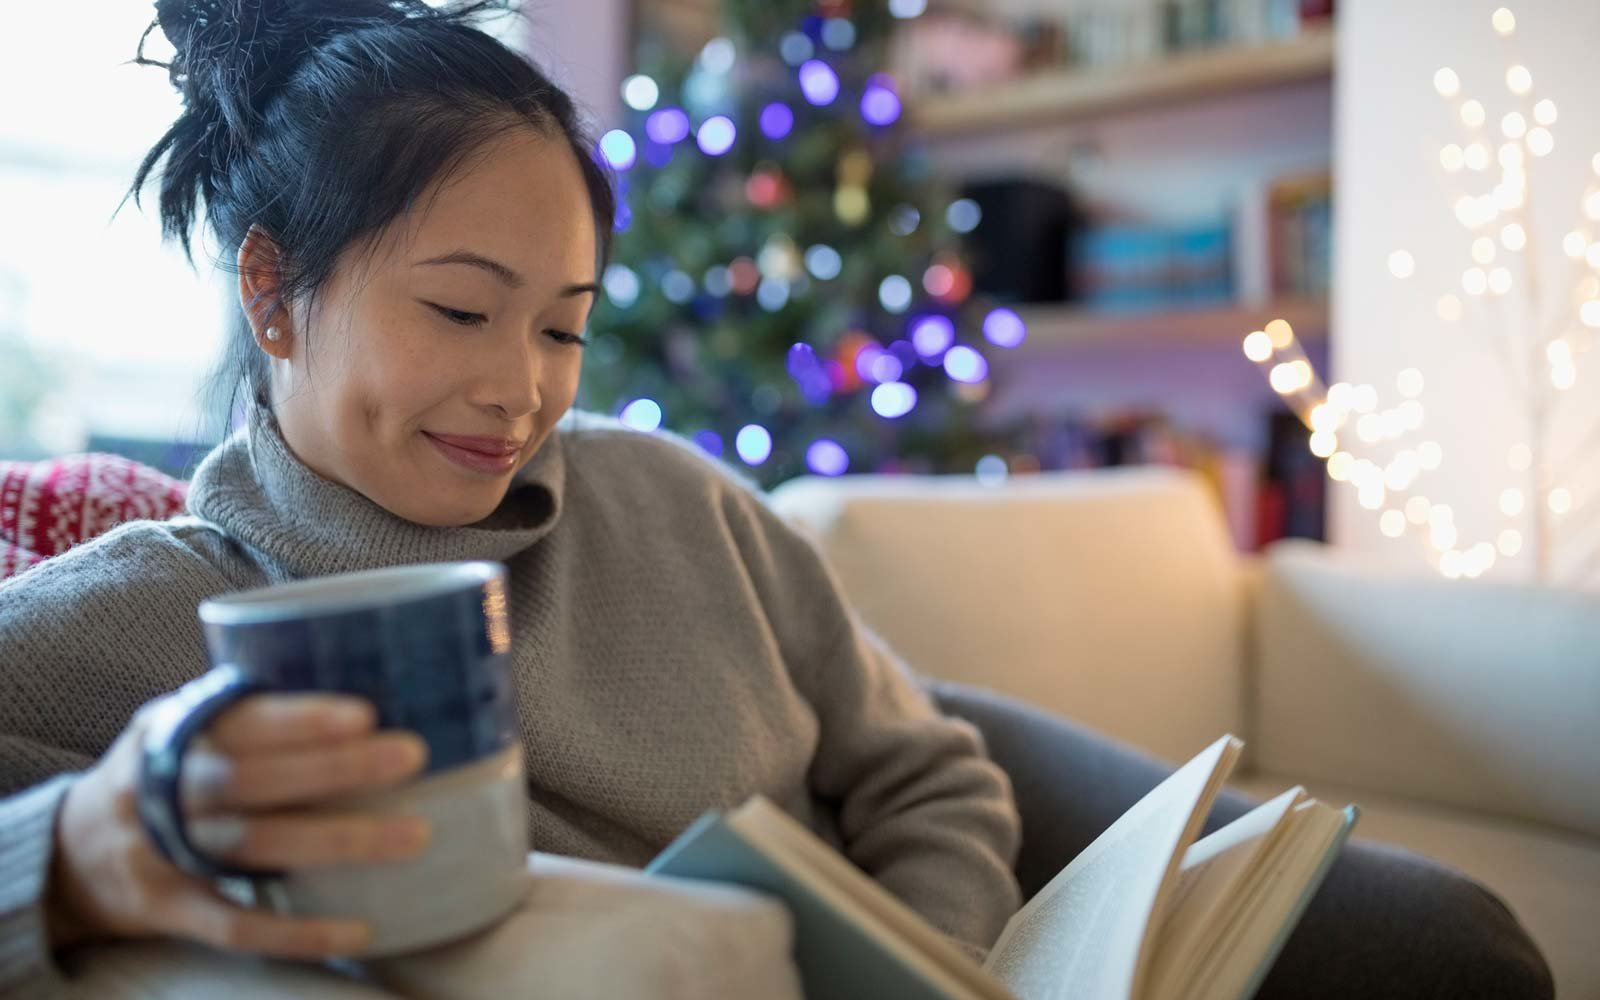 Smiling woman drinking coffee and reading book in Christmas living room